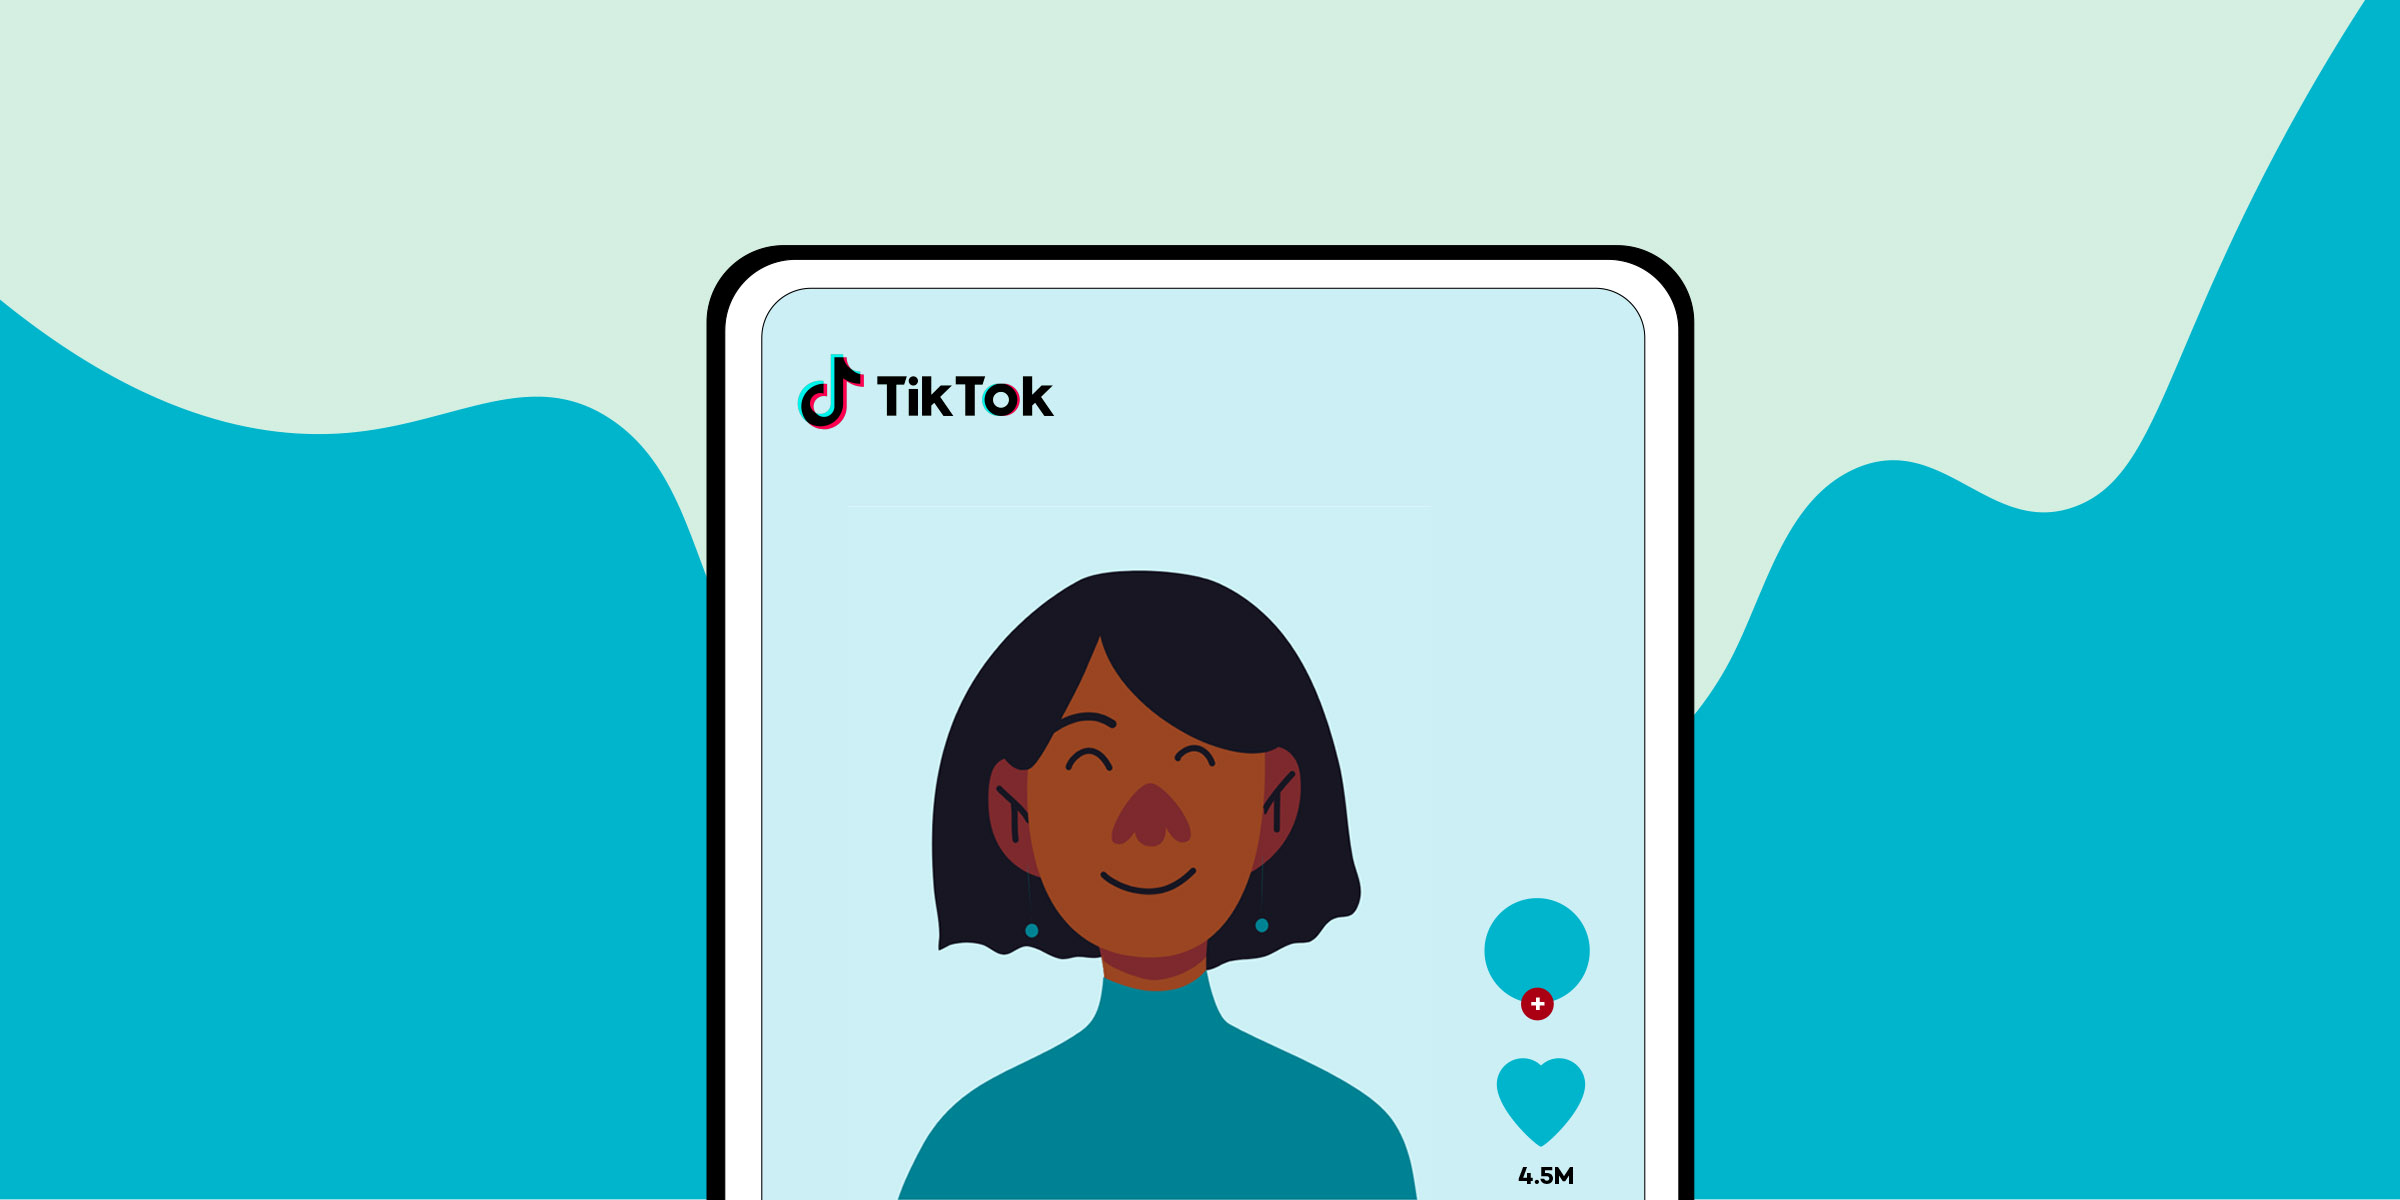 tiktok blog post